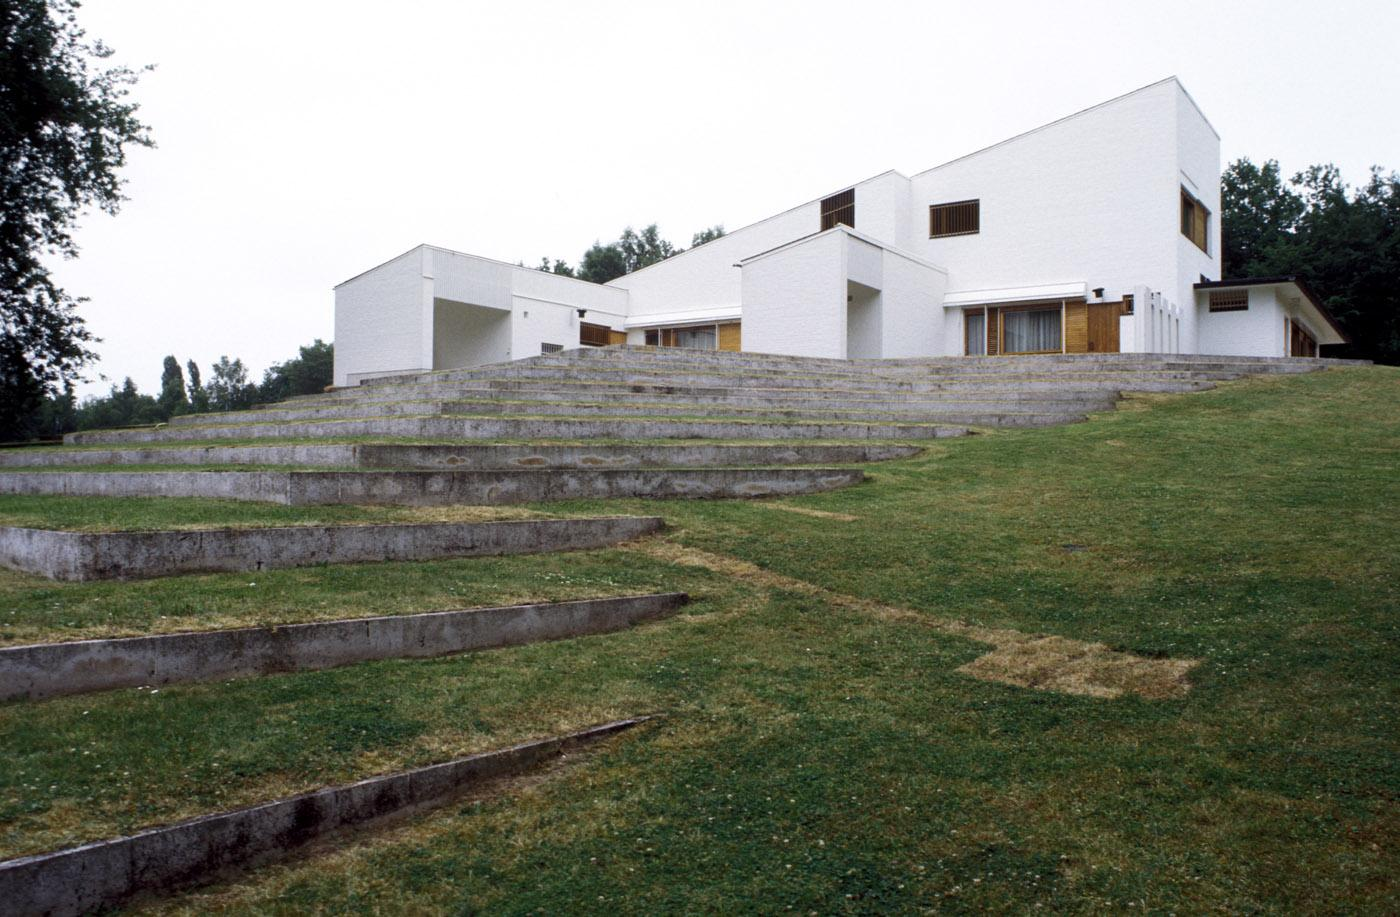 Maison Louis Carré backyard amphitheater